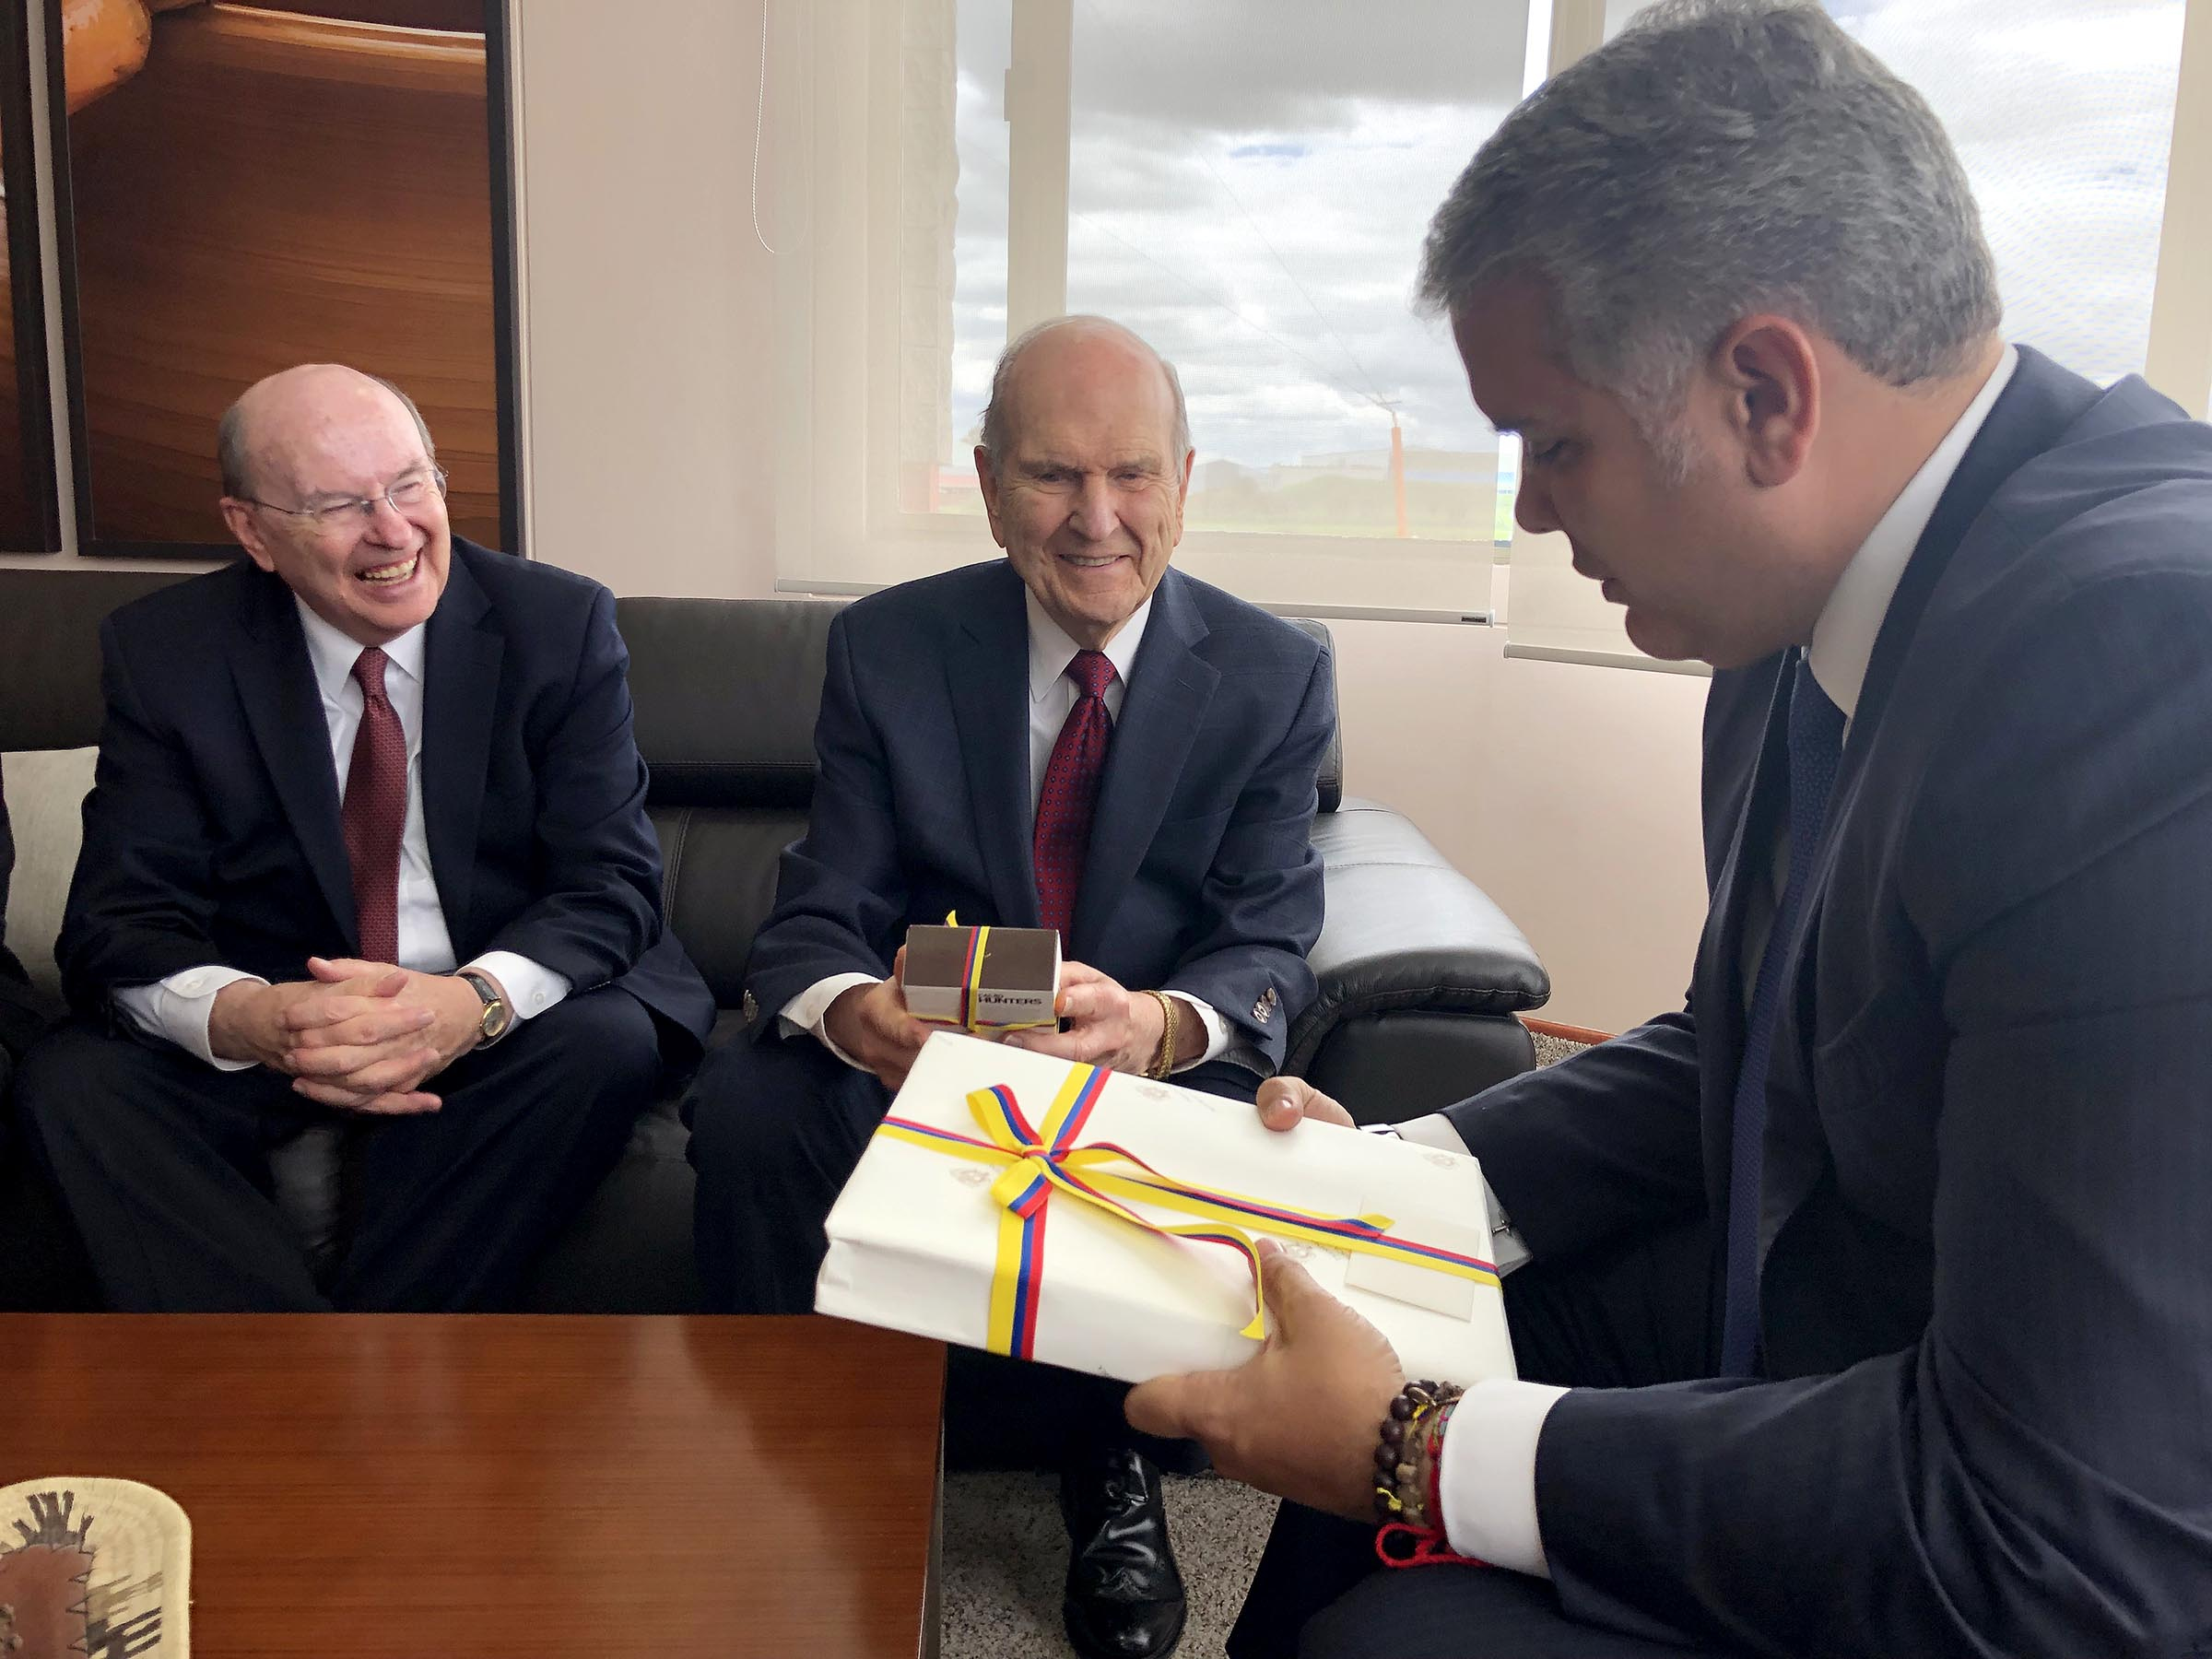 President Russell M. Nelson of The Church of Jesus Christ of Latter-day Saints, center, and Elder Quentin L. Cook of the Quorum of the Twelve Apostles, left, present gifts as they meet with Colombia President Iván Duque Márquez, right, in Bogota, Colombia, Monday, Aug. 26, 2019.